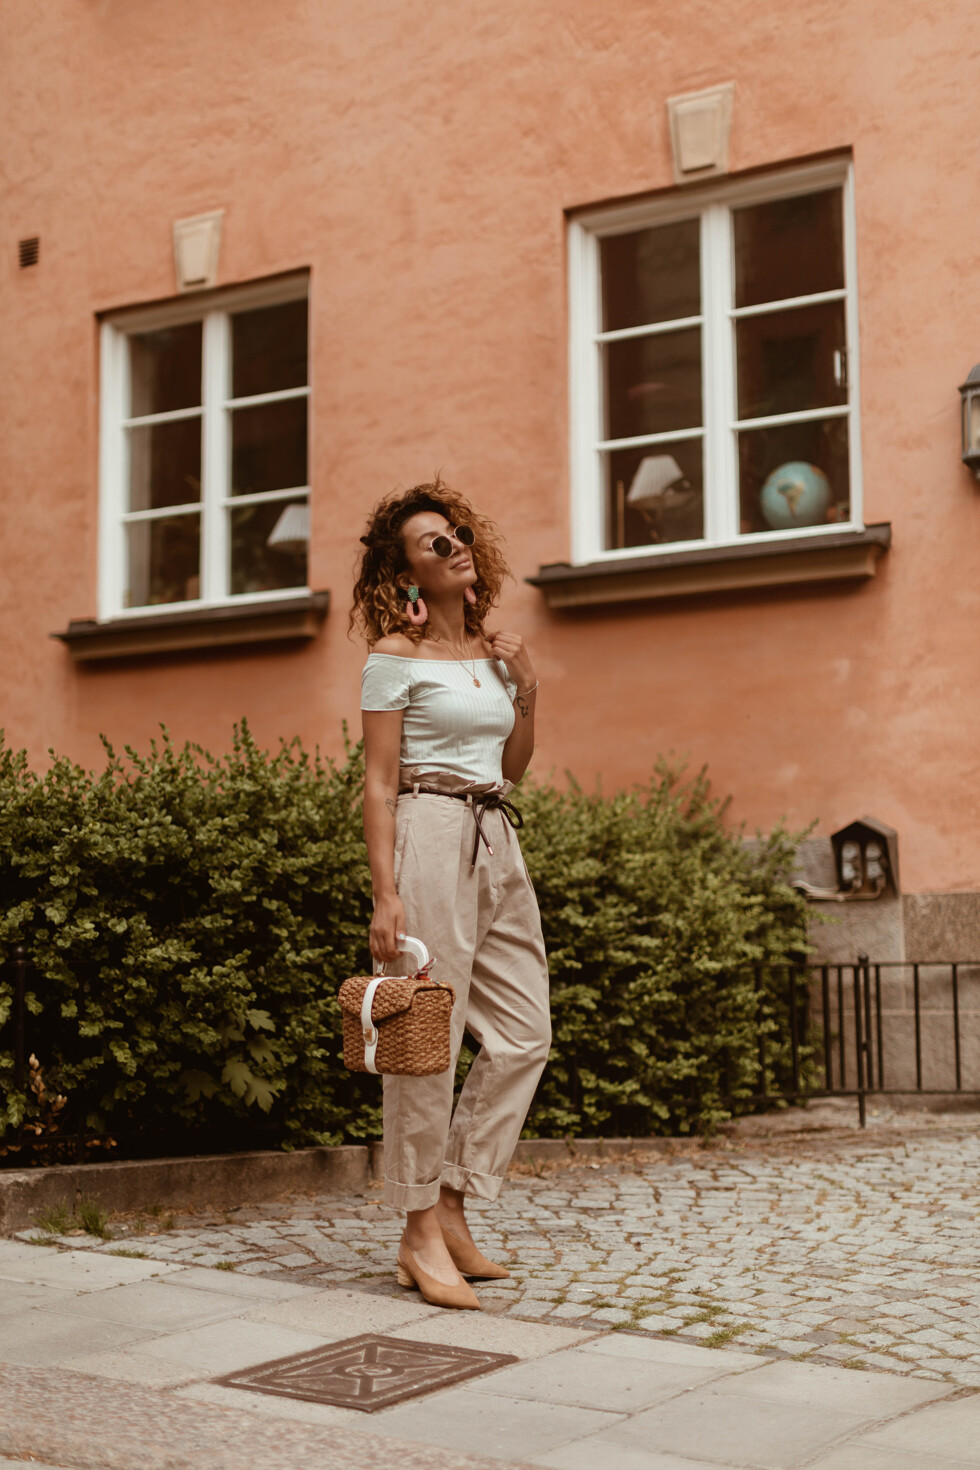 sara-che-paper-waist-pants-90s-fashion-straw-bag-curly-hair-off-shoulder-top